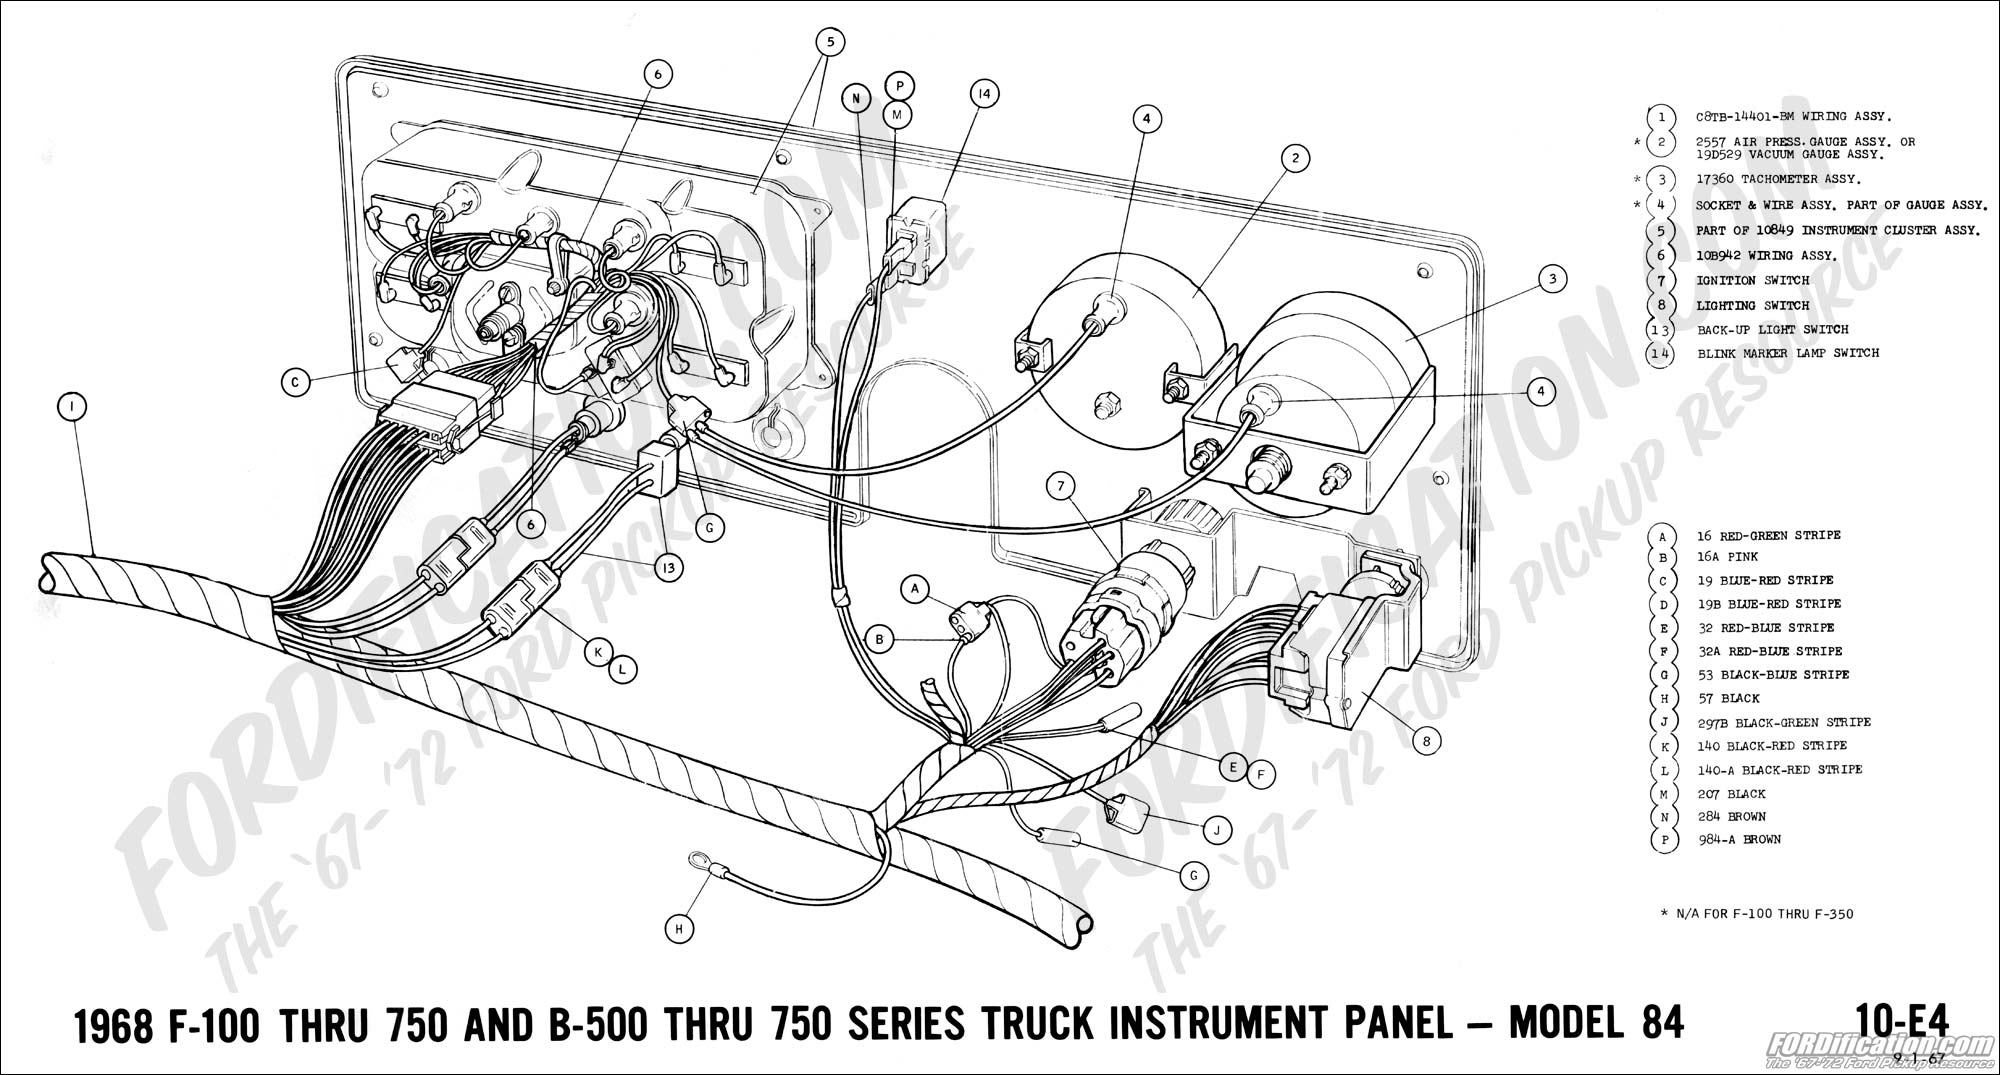 ford f750 fuse diagram ford image wiring diagram ford truck technical drawings and schematics section h wiring on ford f750 fuse diagram